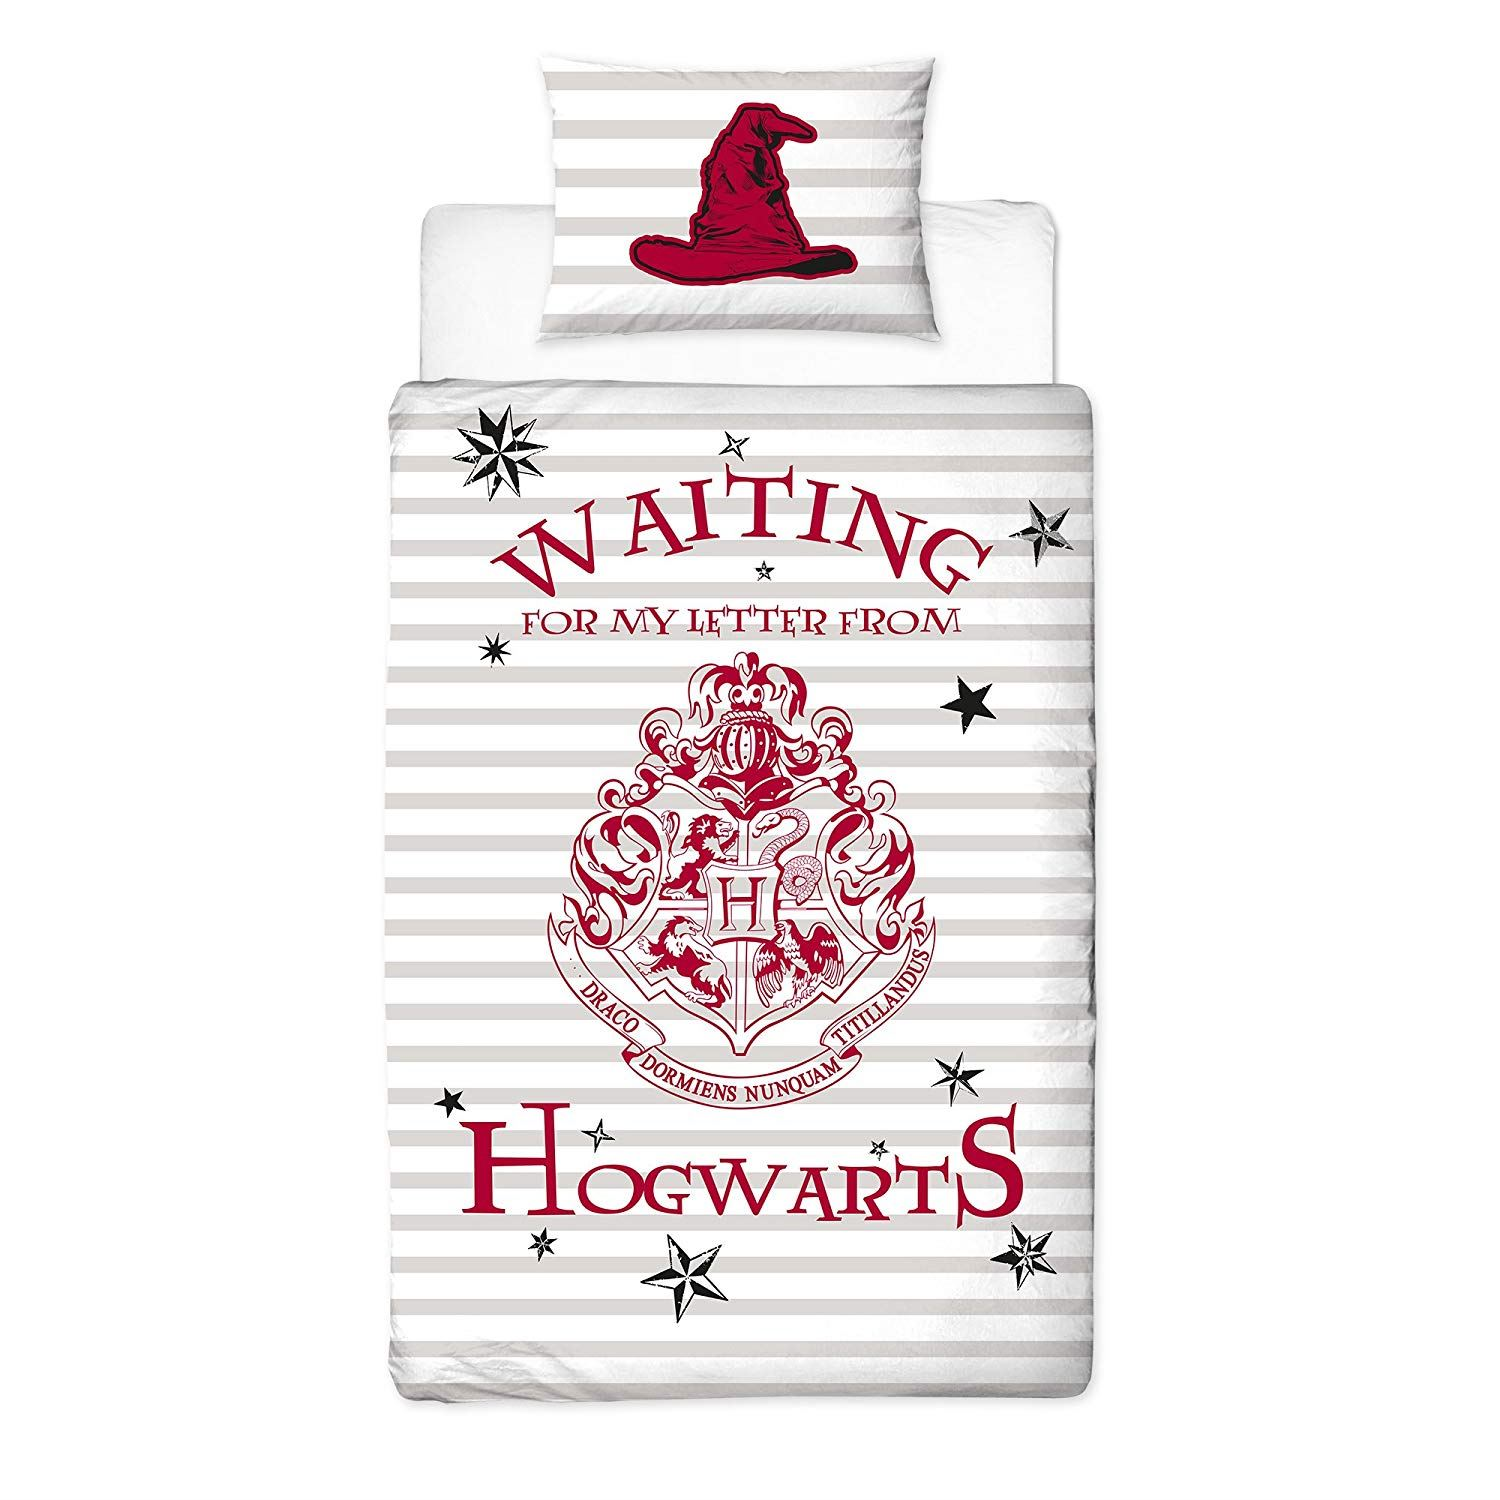 Official-Harry-Potter-Licensed-Duvet-Covers-Single-Double-Muggles-Hogwarts-Charm thumbnail 22